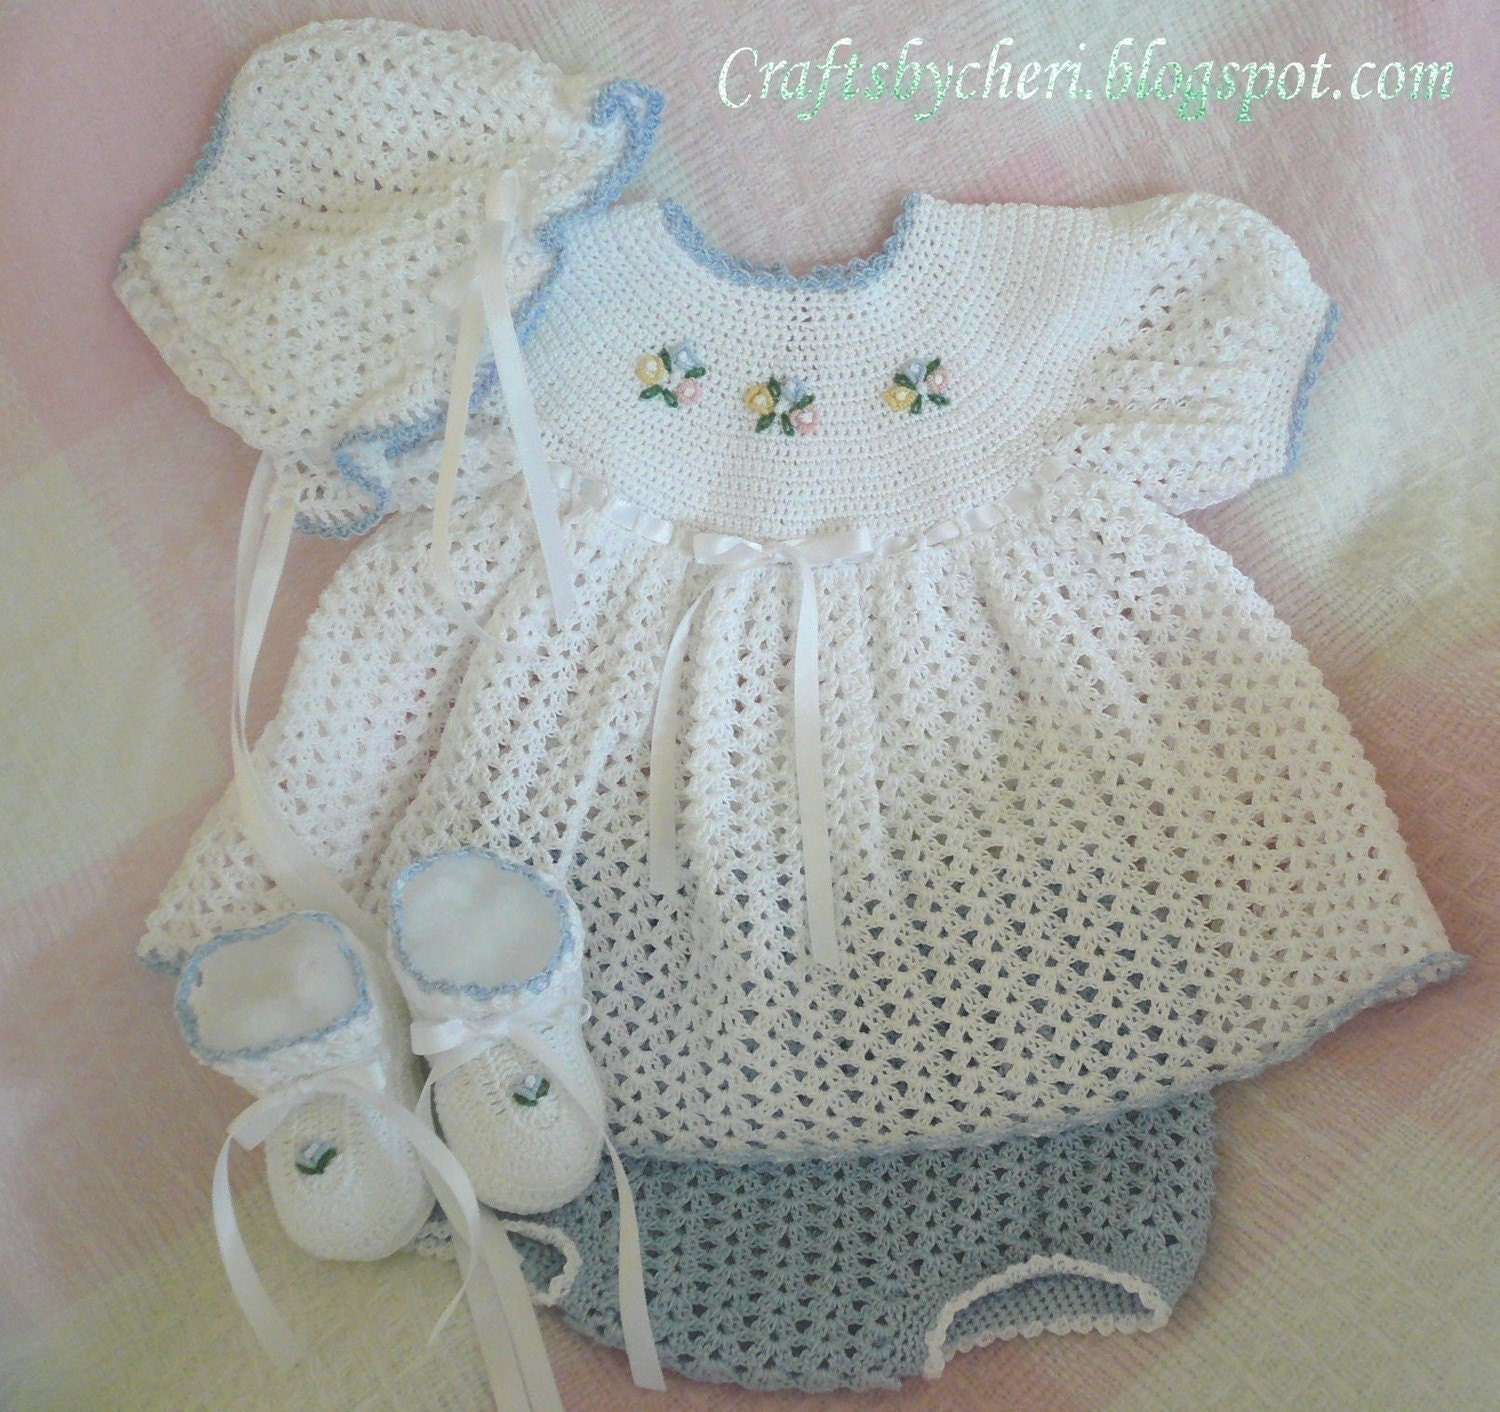 How To Crochet Baby Dress Pattern : Cheri Crochet Original Baby PATTERN-Newborn size-Dress